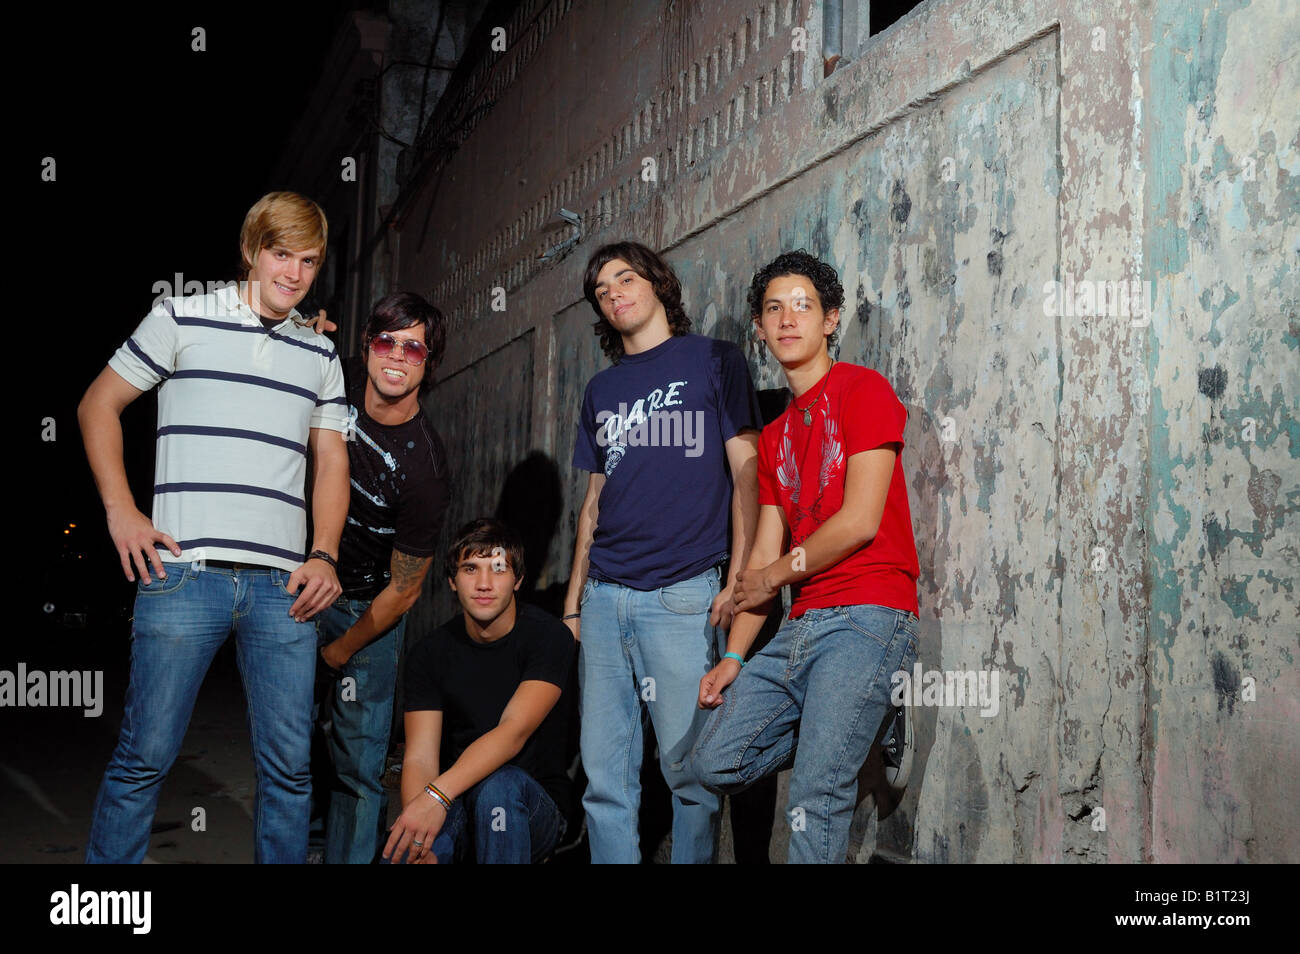 Groupe d'adolescents occasionnels contre mur grunge permanent Photo Stock